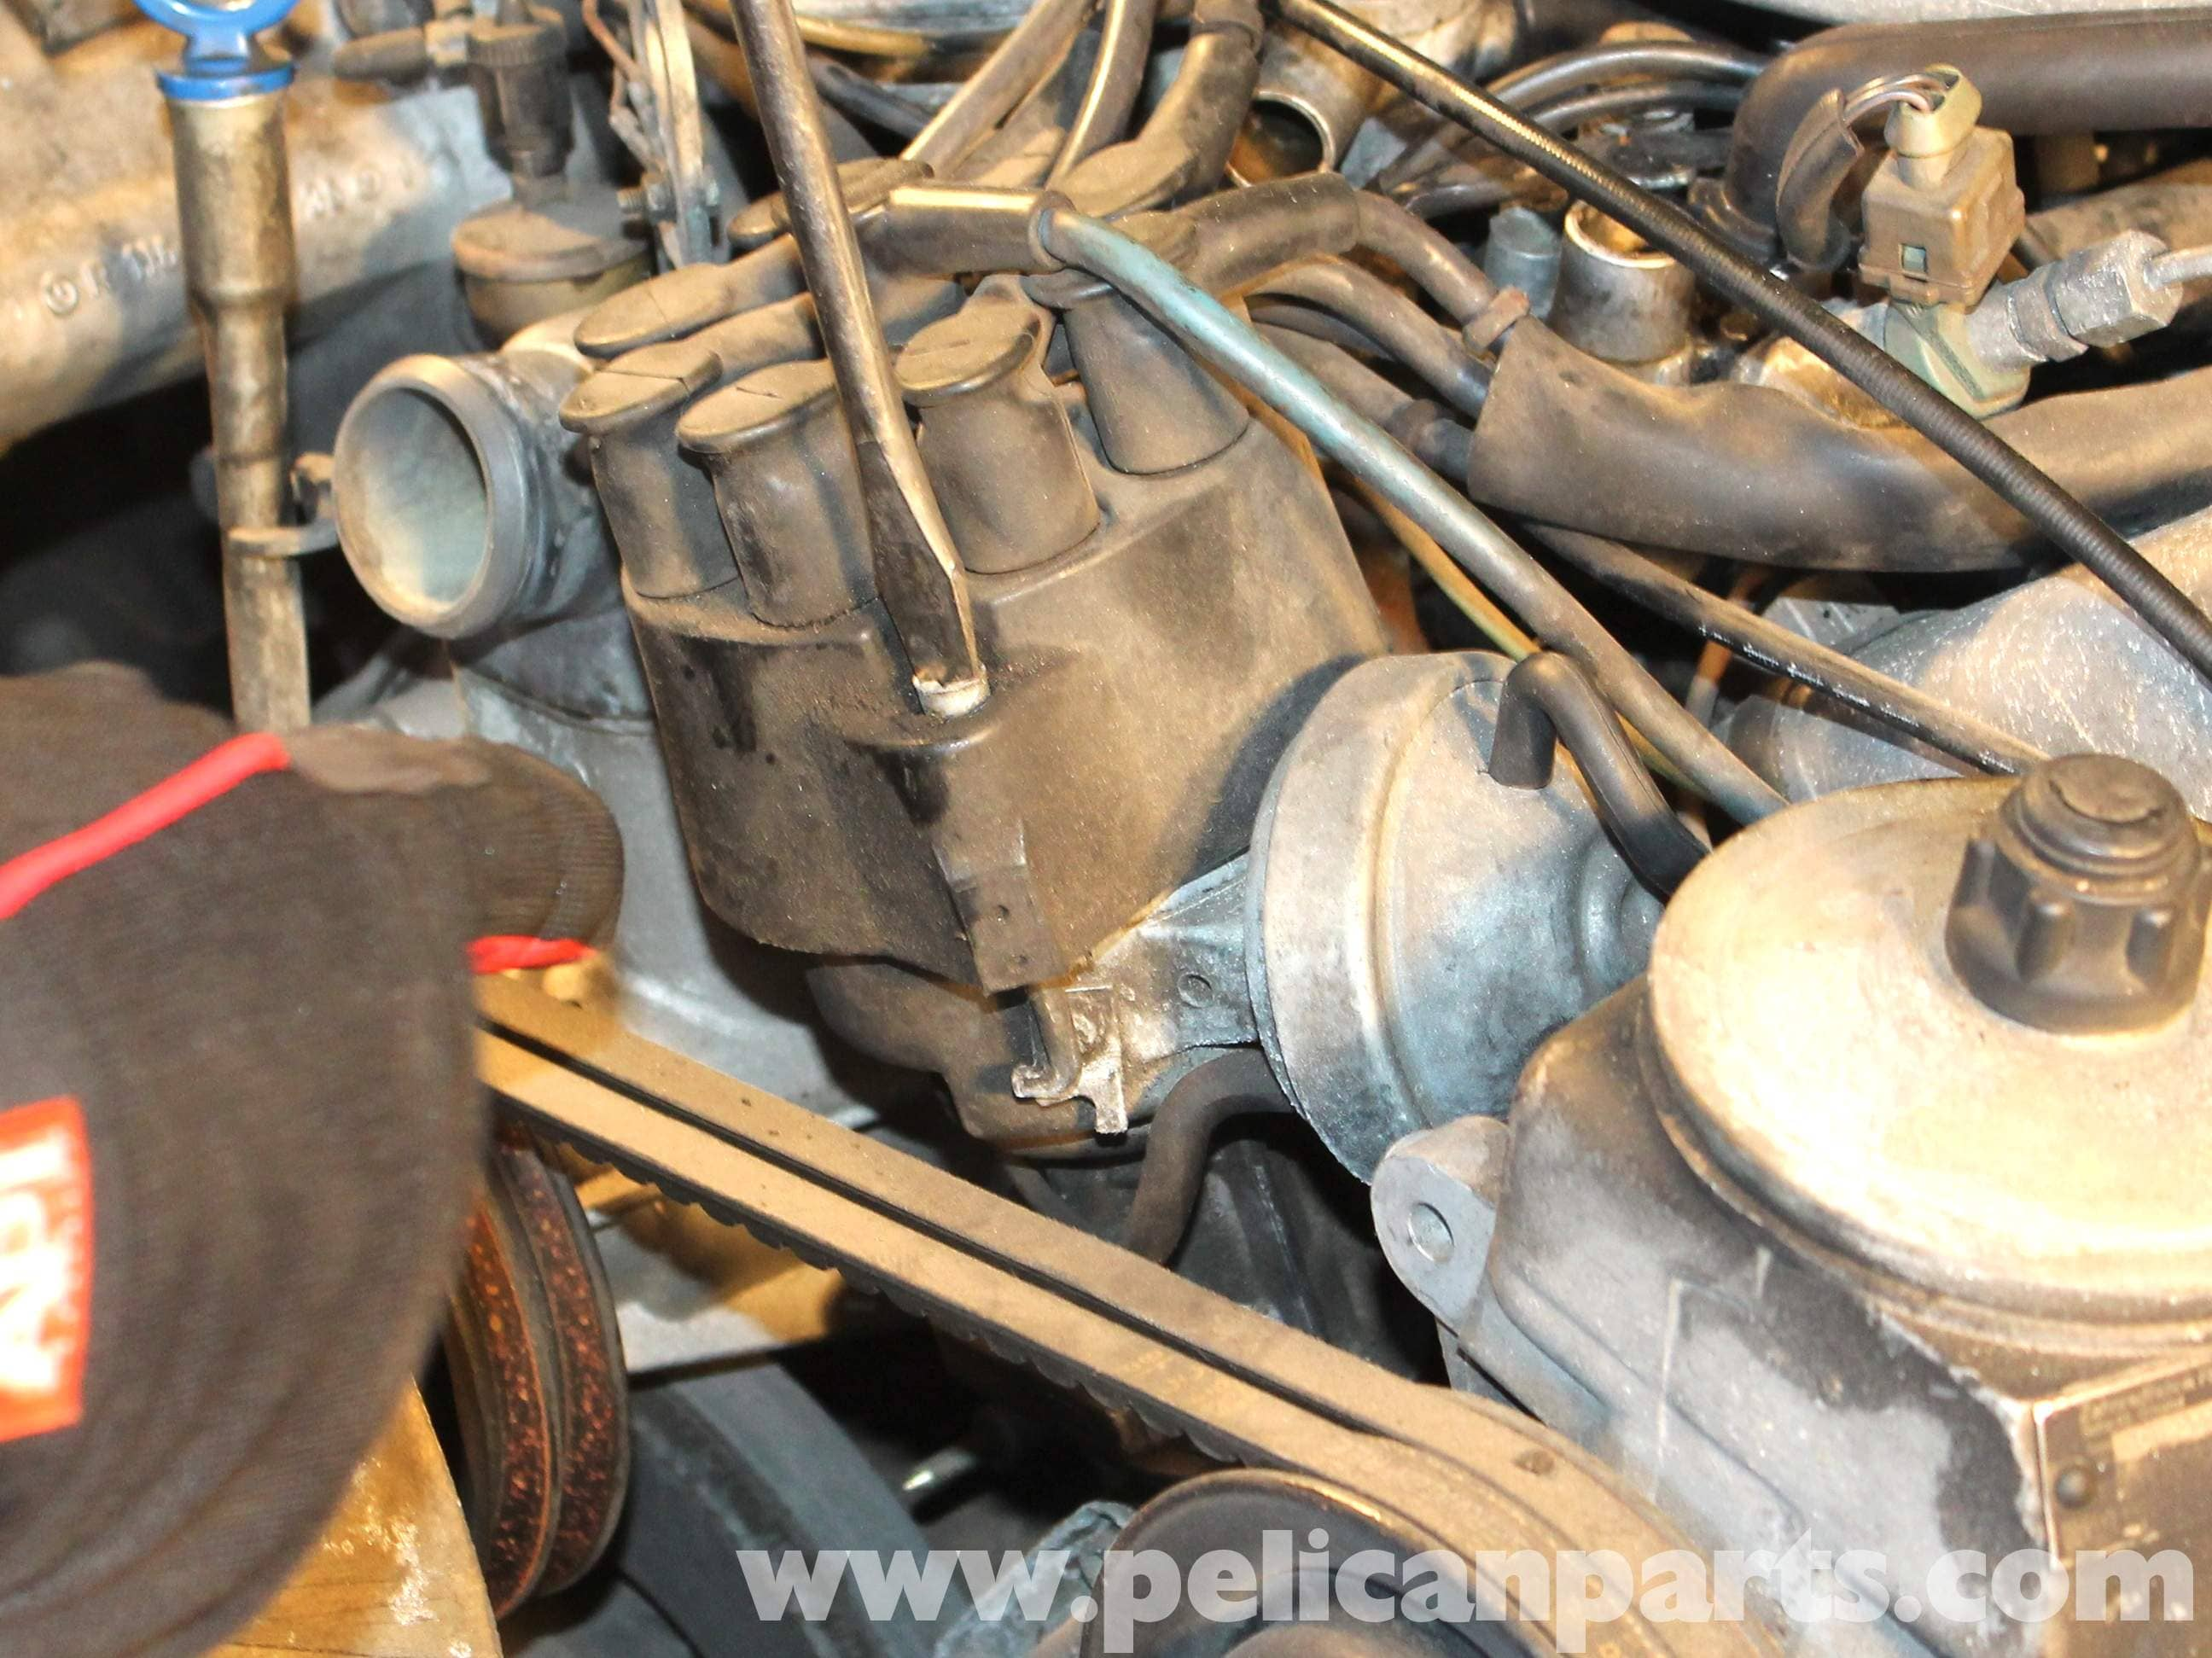 Mercedes-Benz R107 Ignition Wires, Rotor and Distributor Cap ...